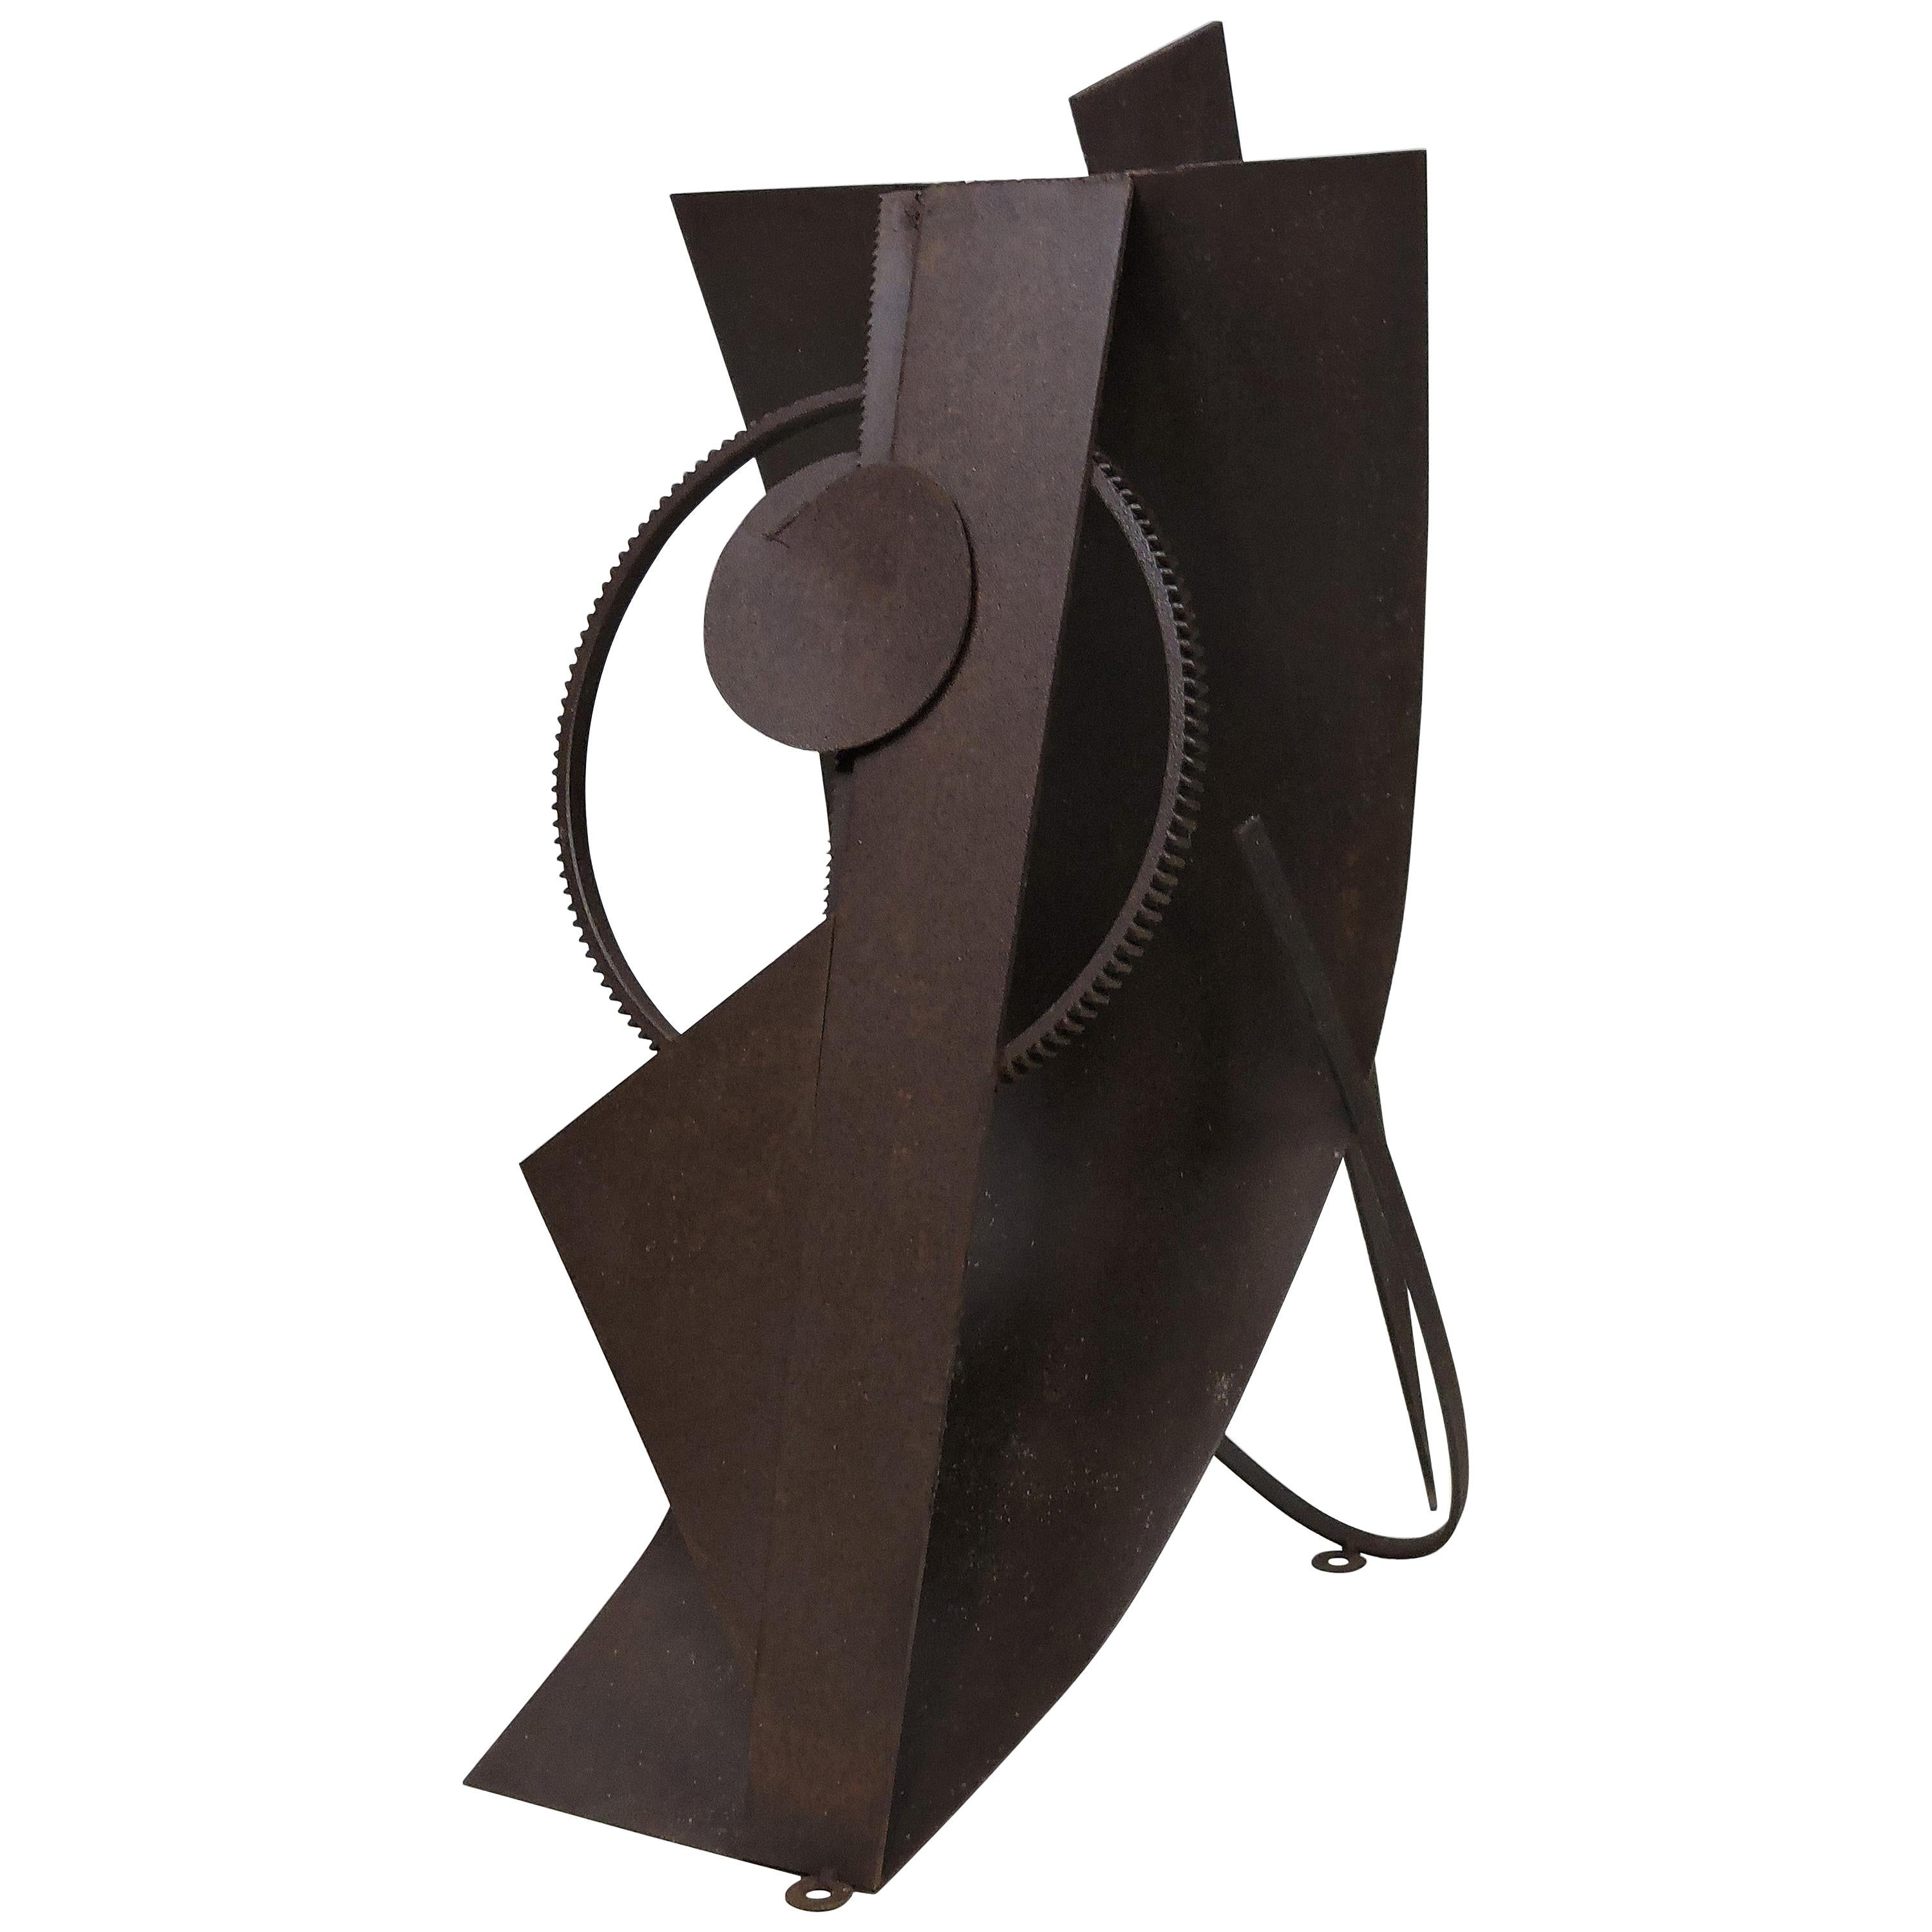 """Abstract Welded Steel Sculpture """"Assemblage I"""" by David Tothero"""